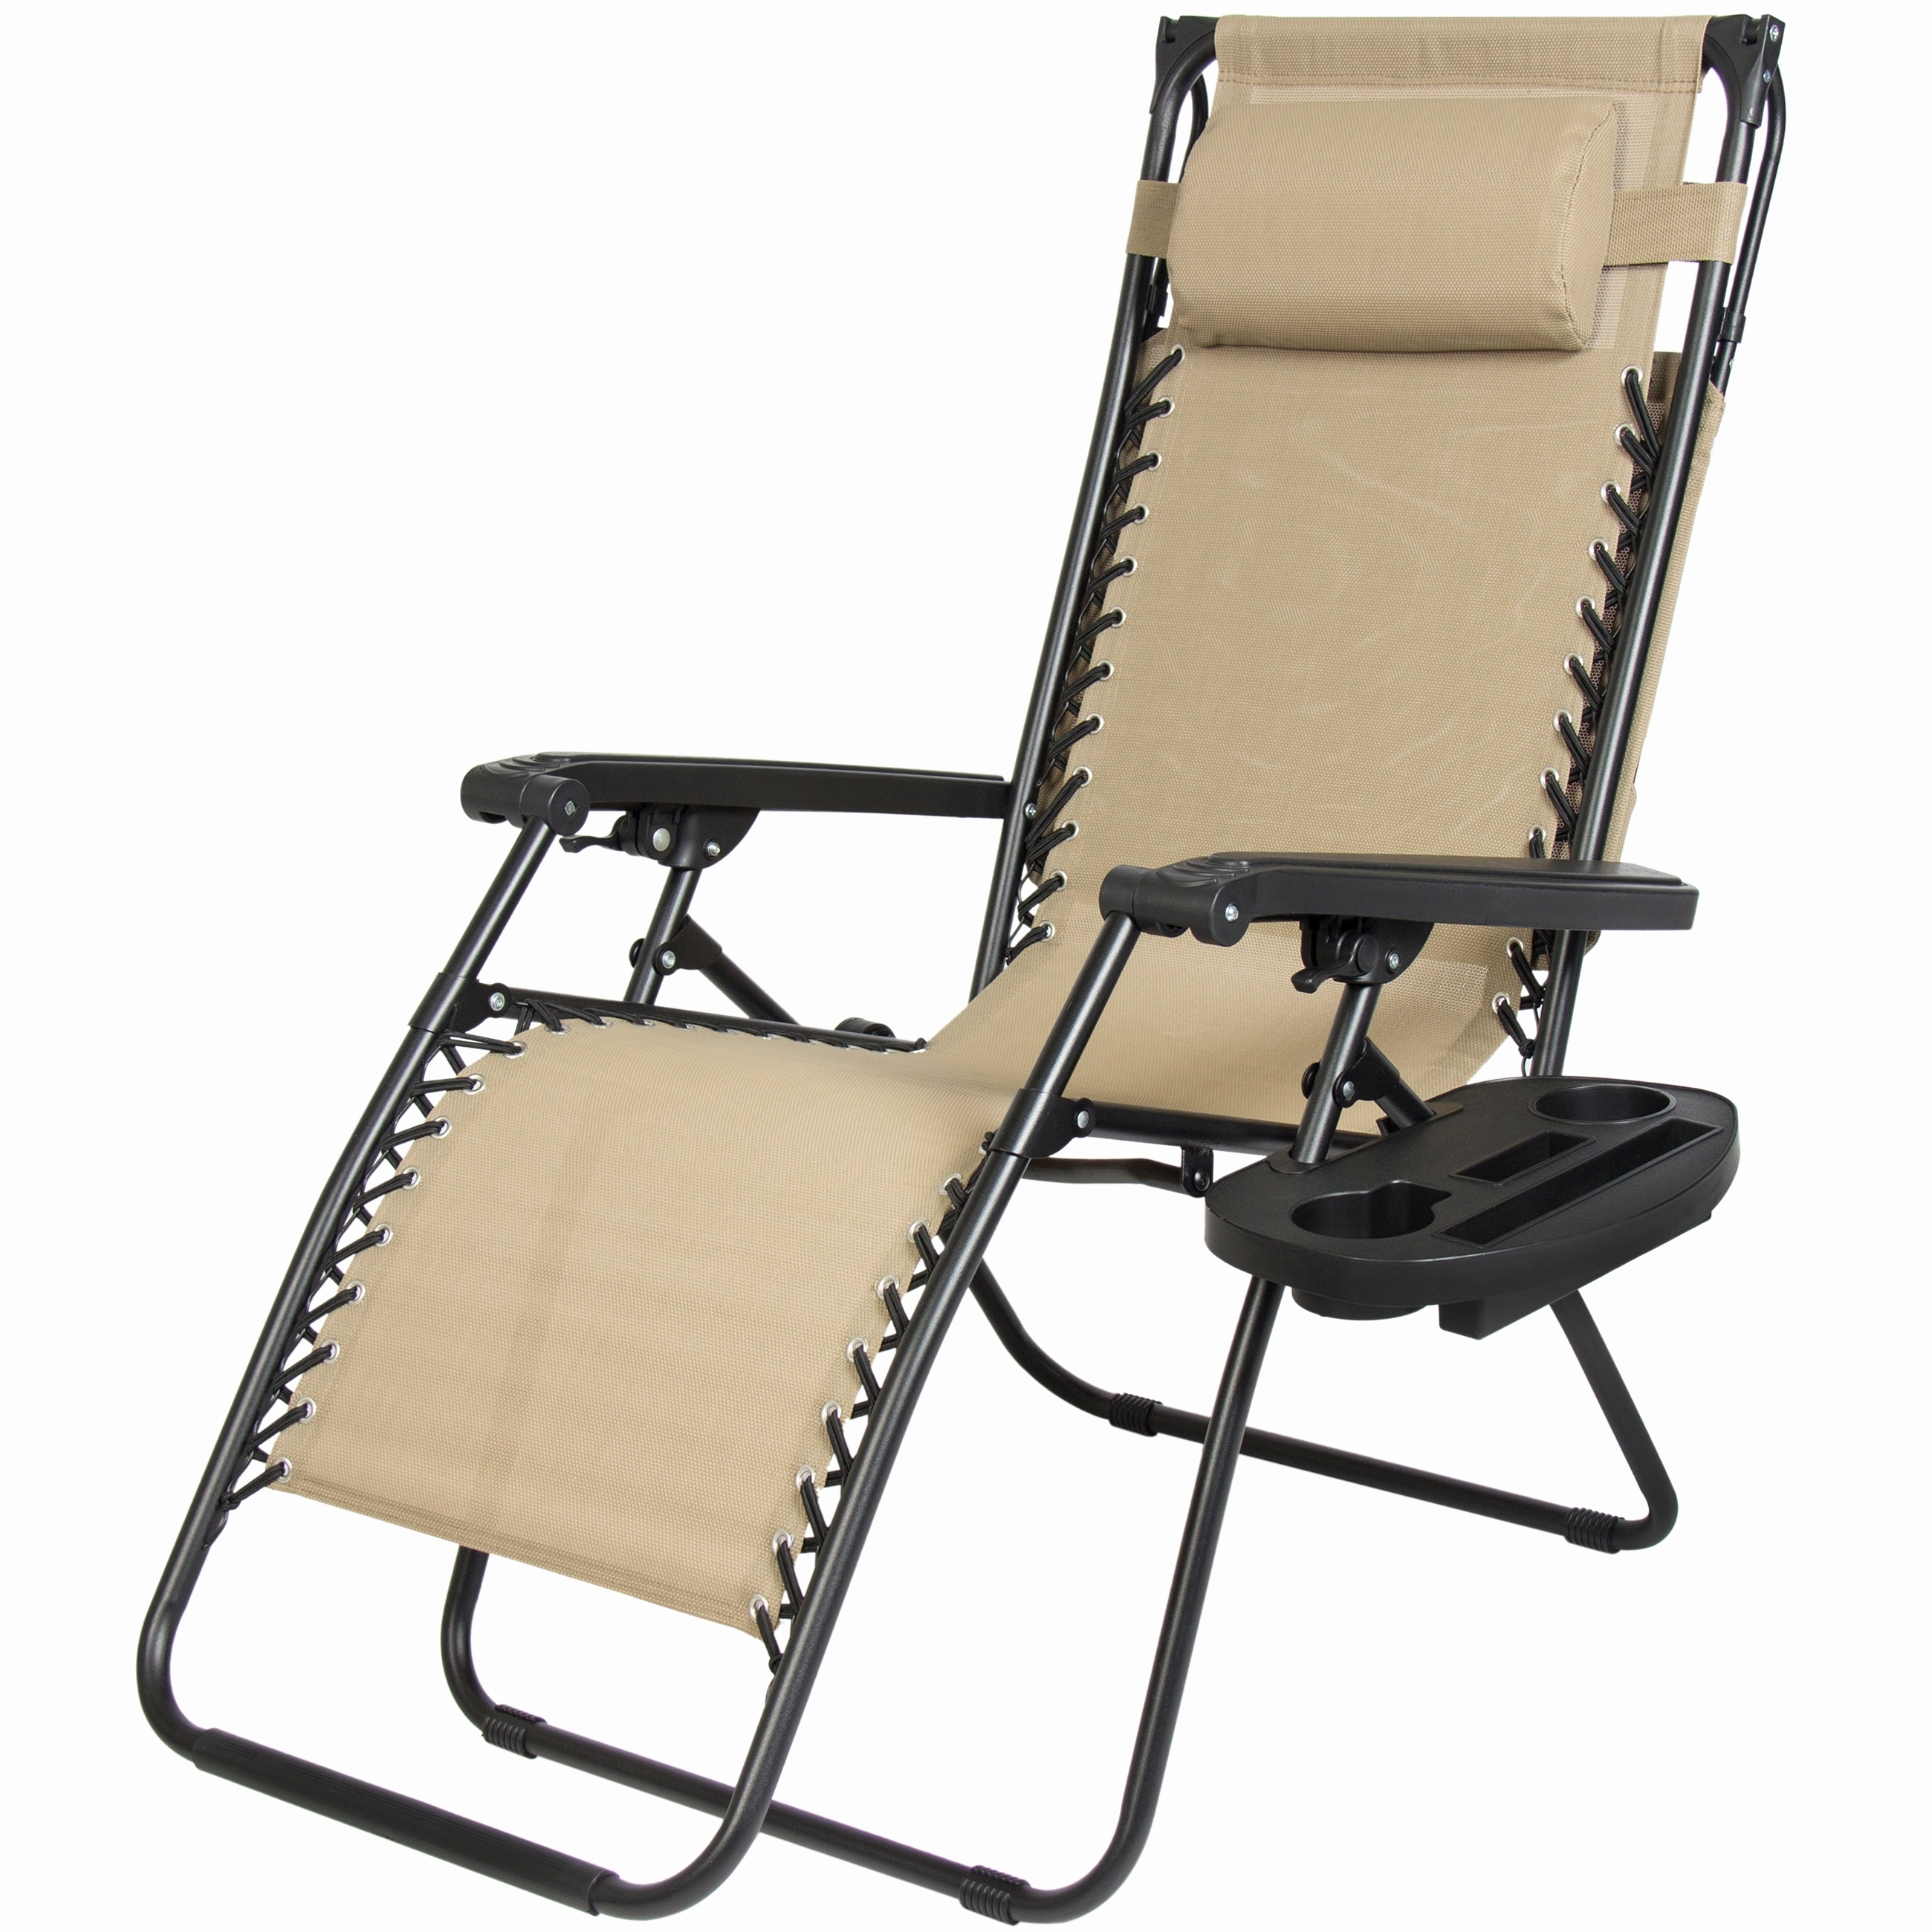 Favorite Lightweight Chaise Lounge Chairs For Outdoor : Folding Outdoor Lounge Chairs Outdoor Double Chaise (View 5 of 15)